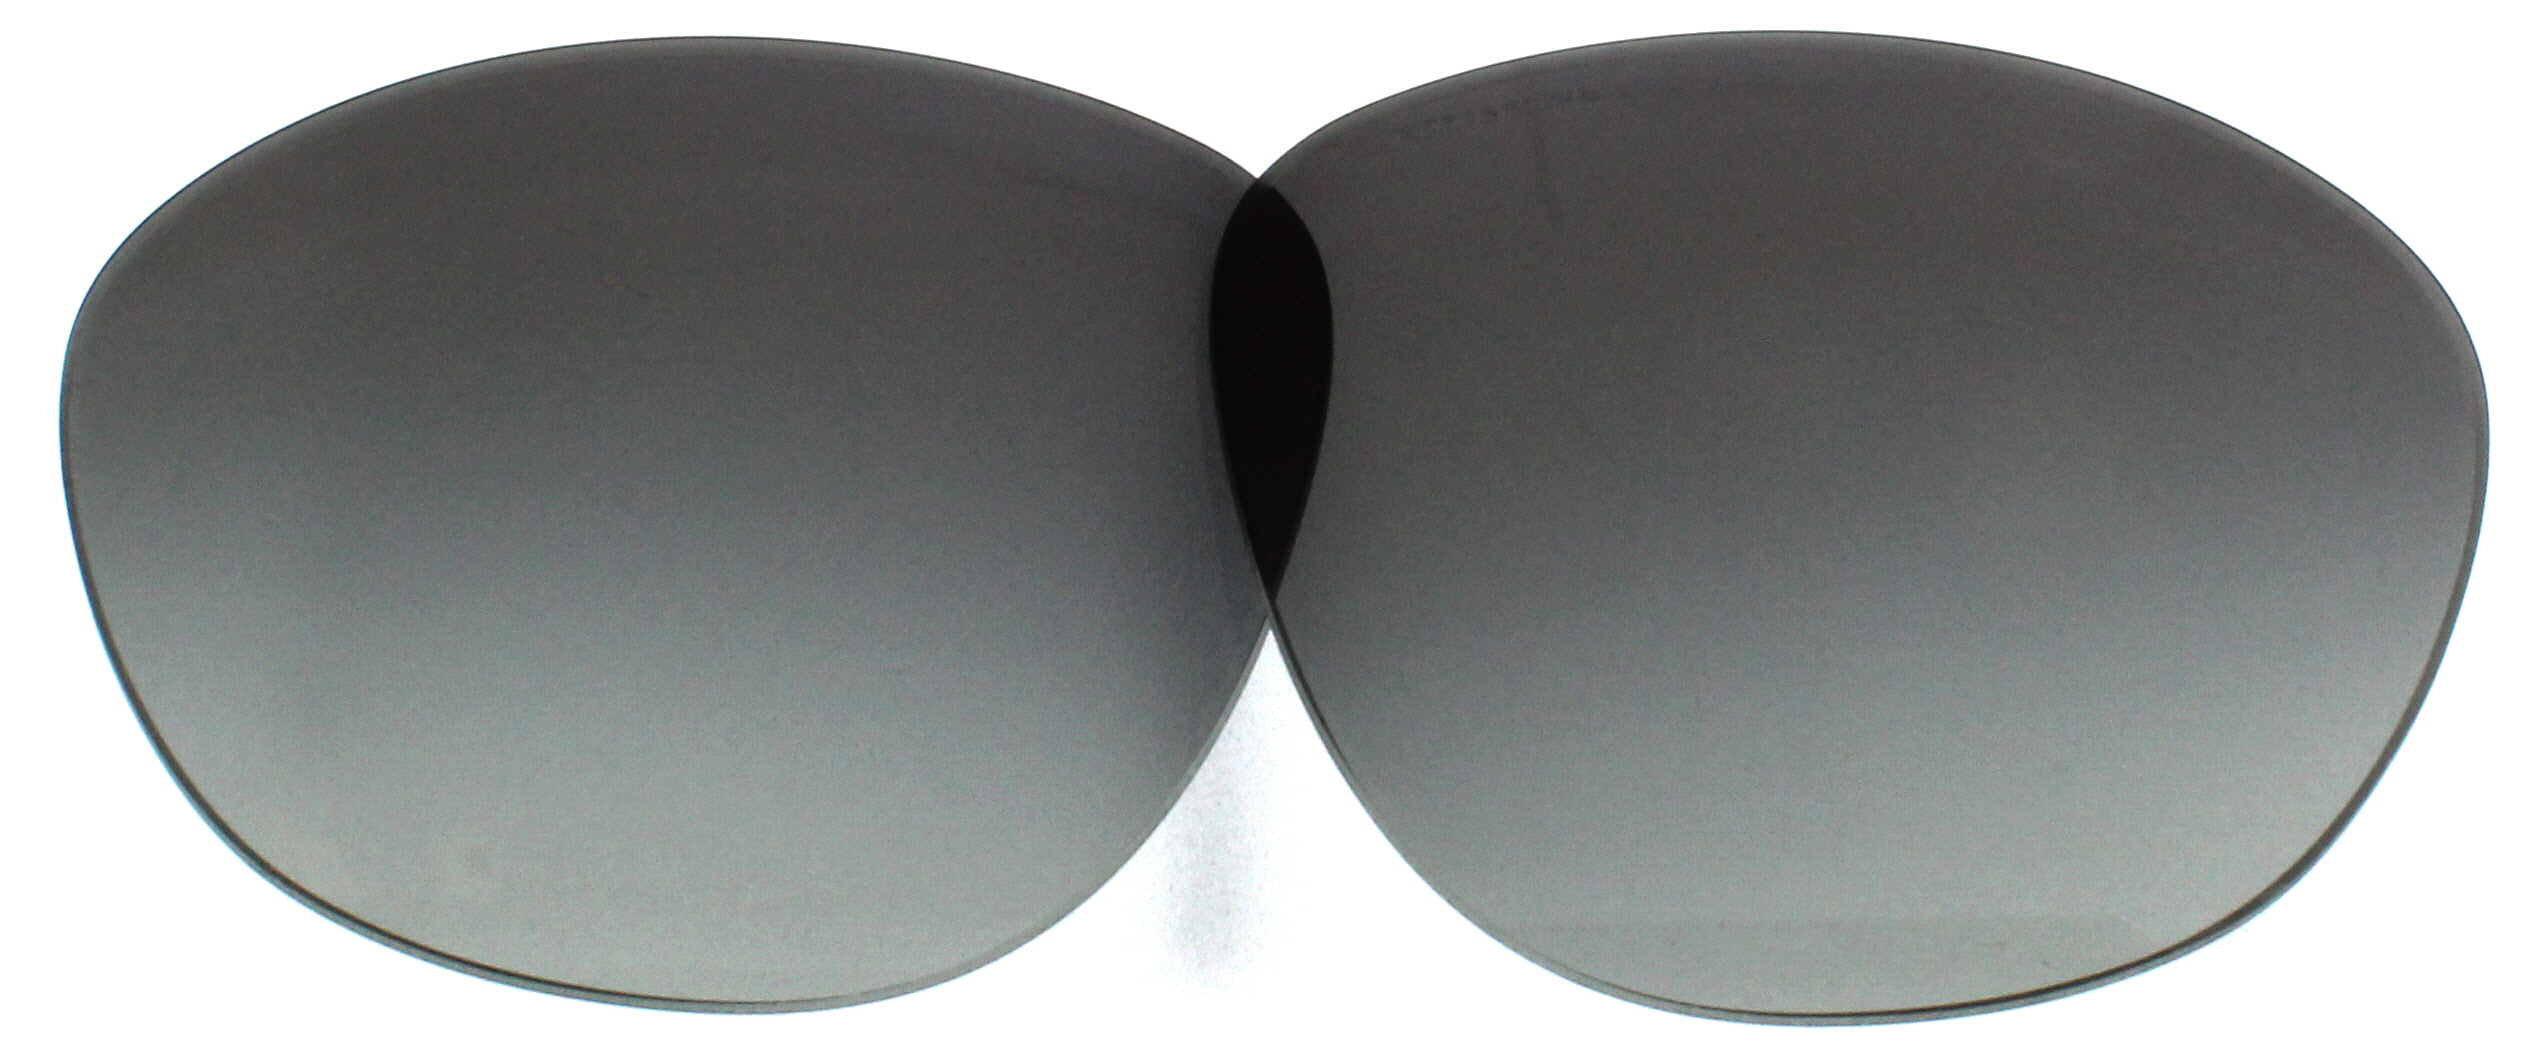 57cf1e77c5 Image is loading VERSACE-Replacement-Lenses-VE4295-Gray-Gradient-57MM